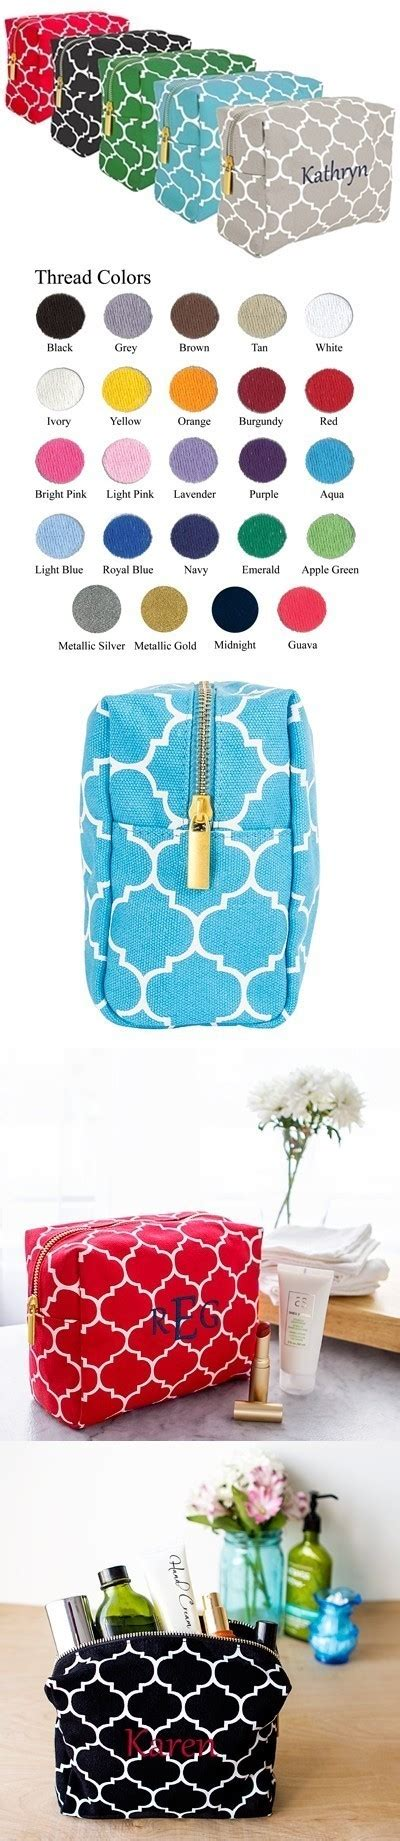 Bao2 Cosmetic Pouch 2164 cathy s concepts personalized moroccan lattice cosmetic bag 5 colors personalized gifts and